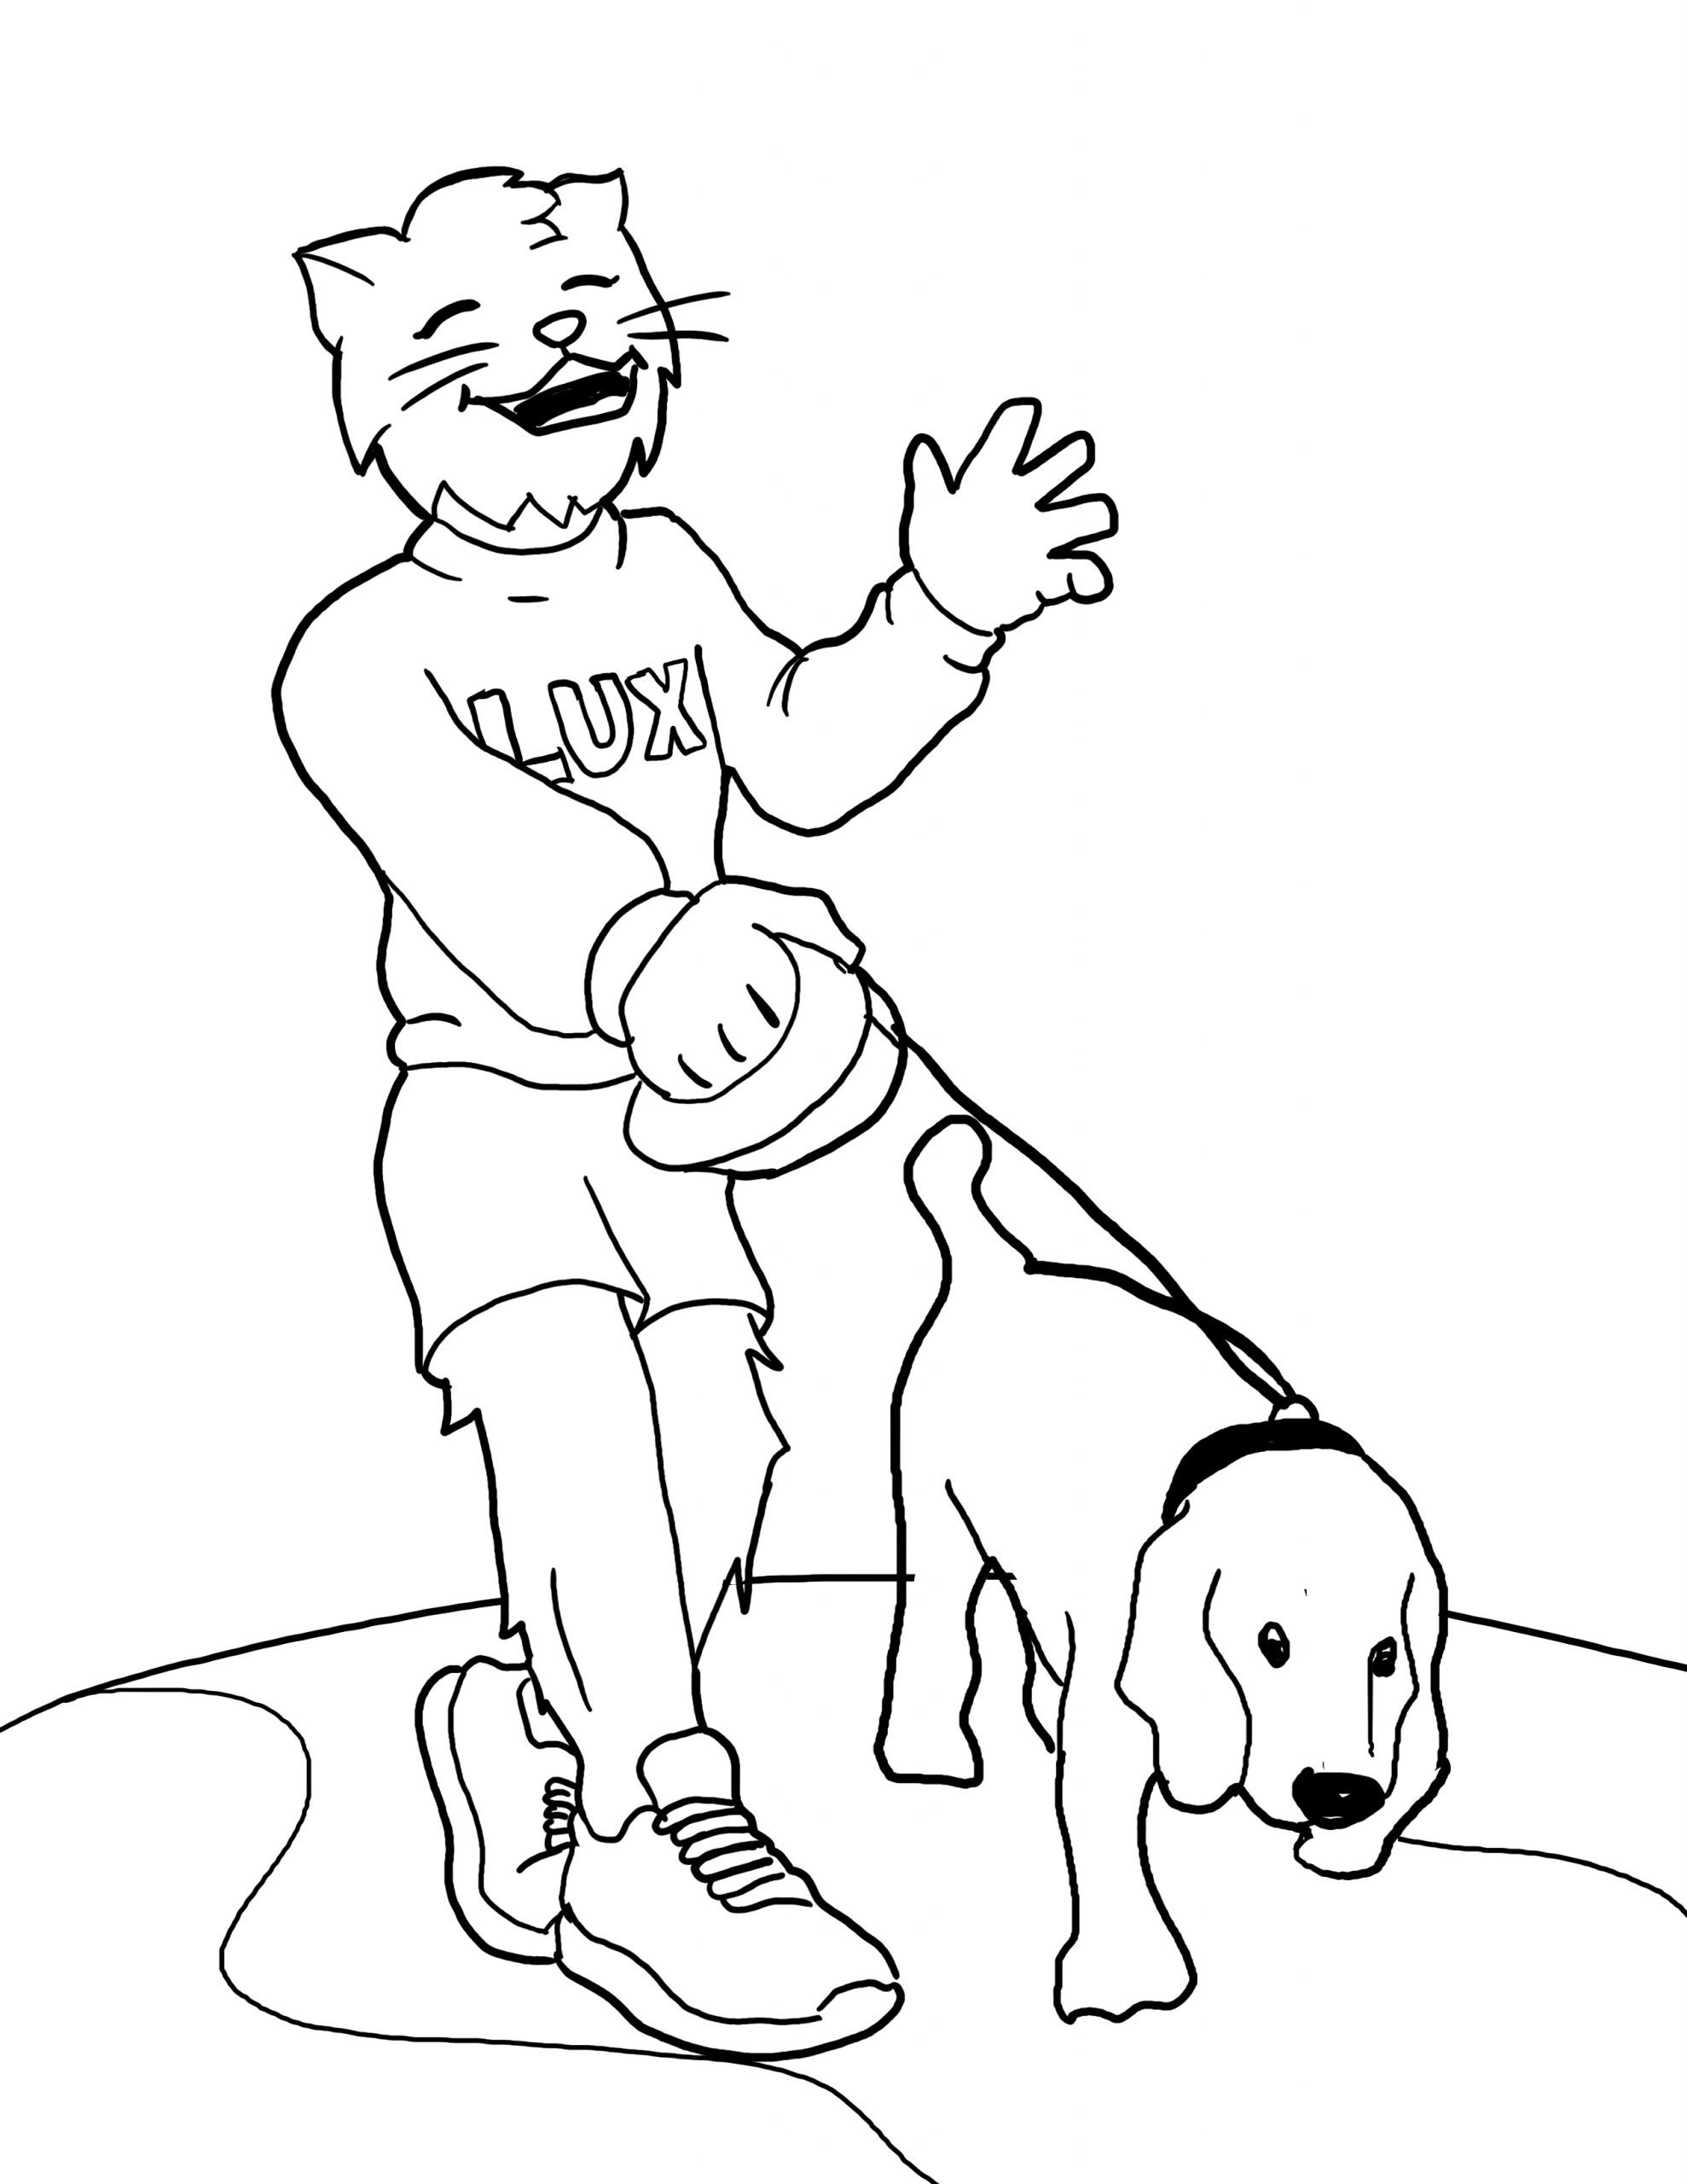 Lux Walking His Dog Coloring Page